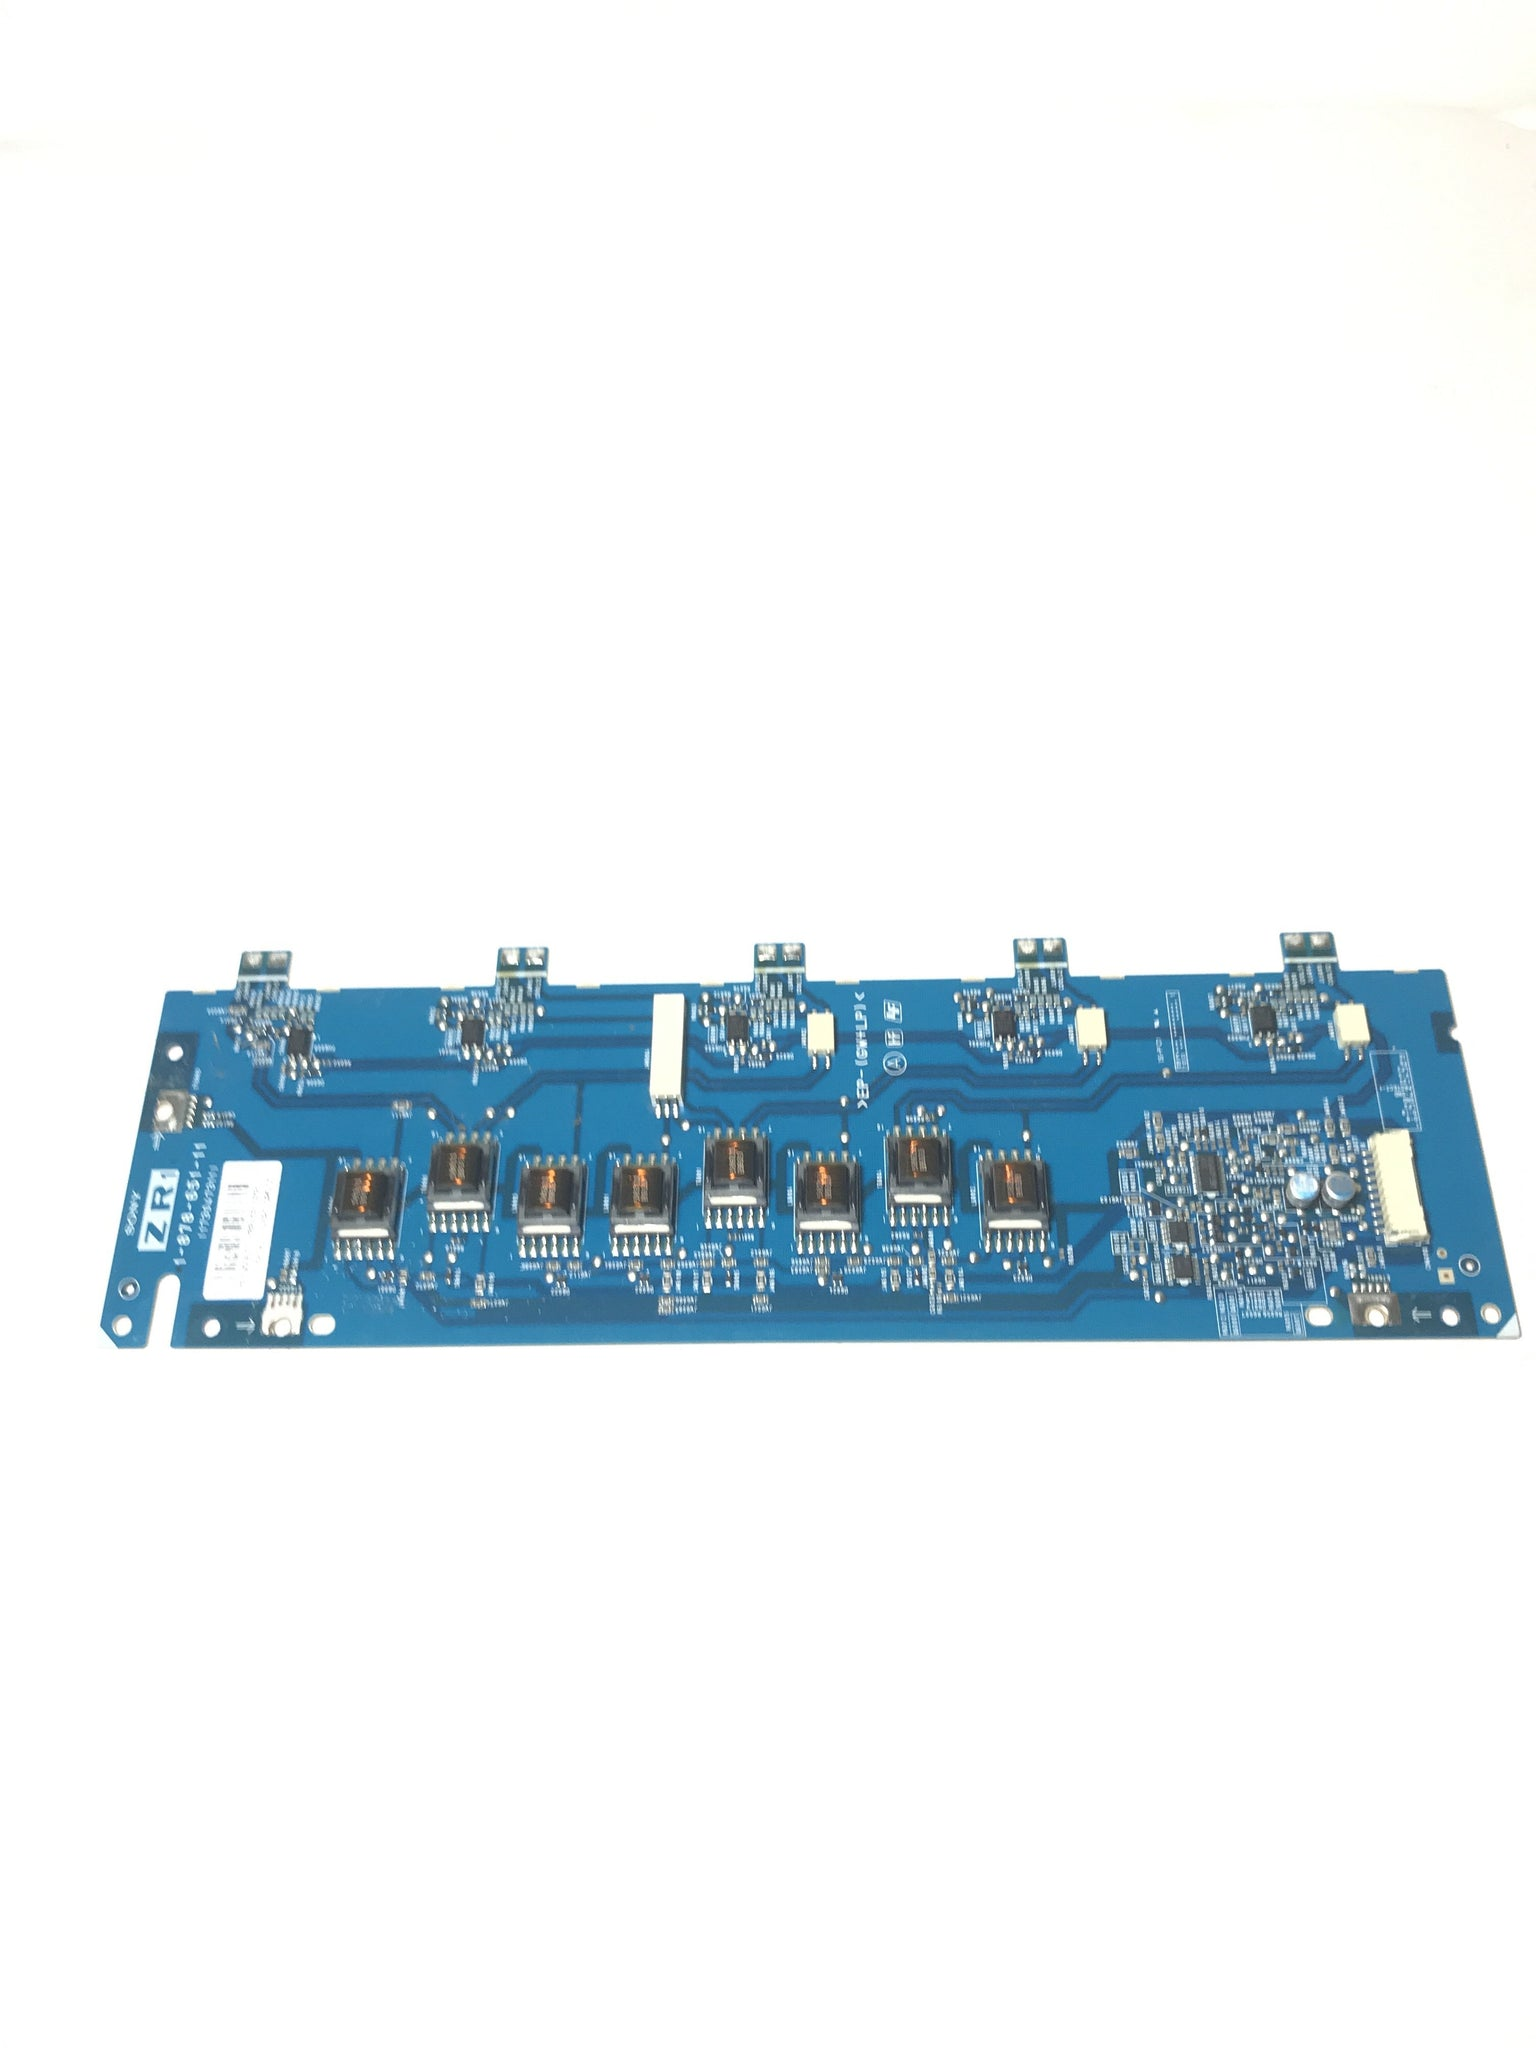 Sony 8-597-095-00 (173047311, 1-878-651-11) ZR1 Board